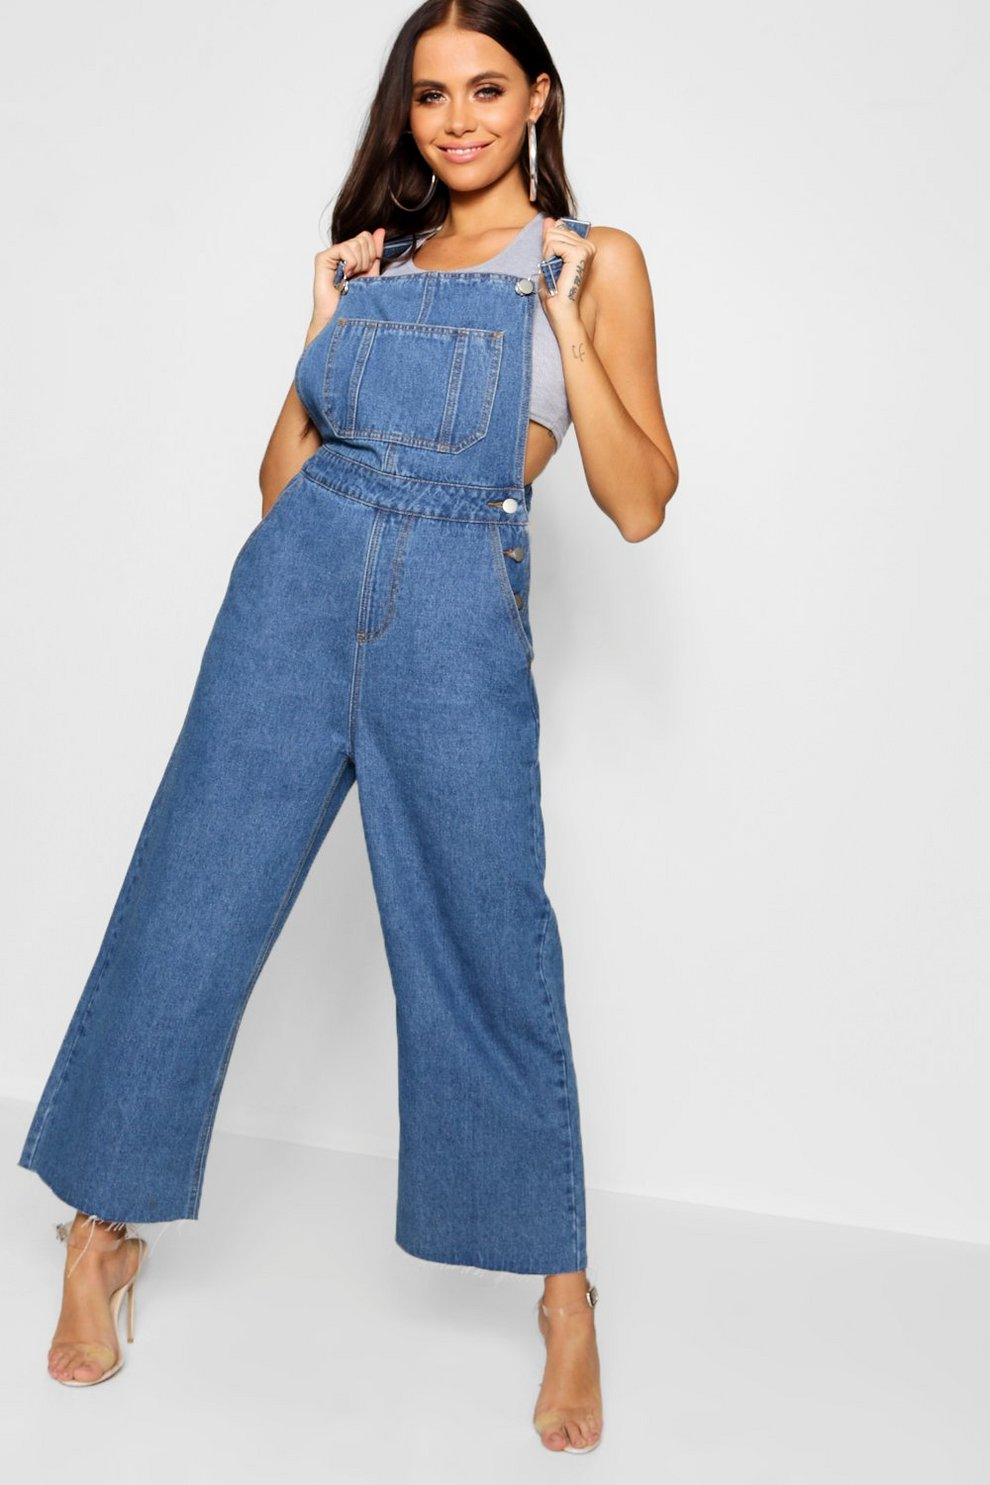 283603a2cda9 Cropped Wide Leg Overall